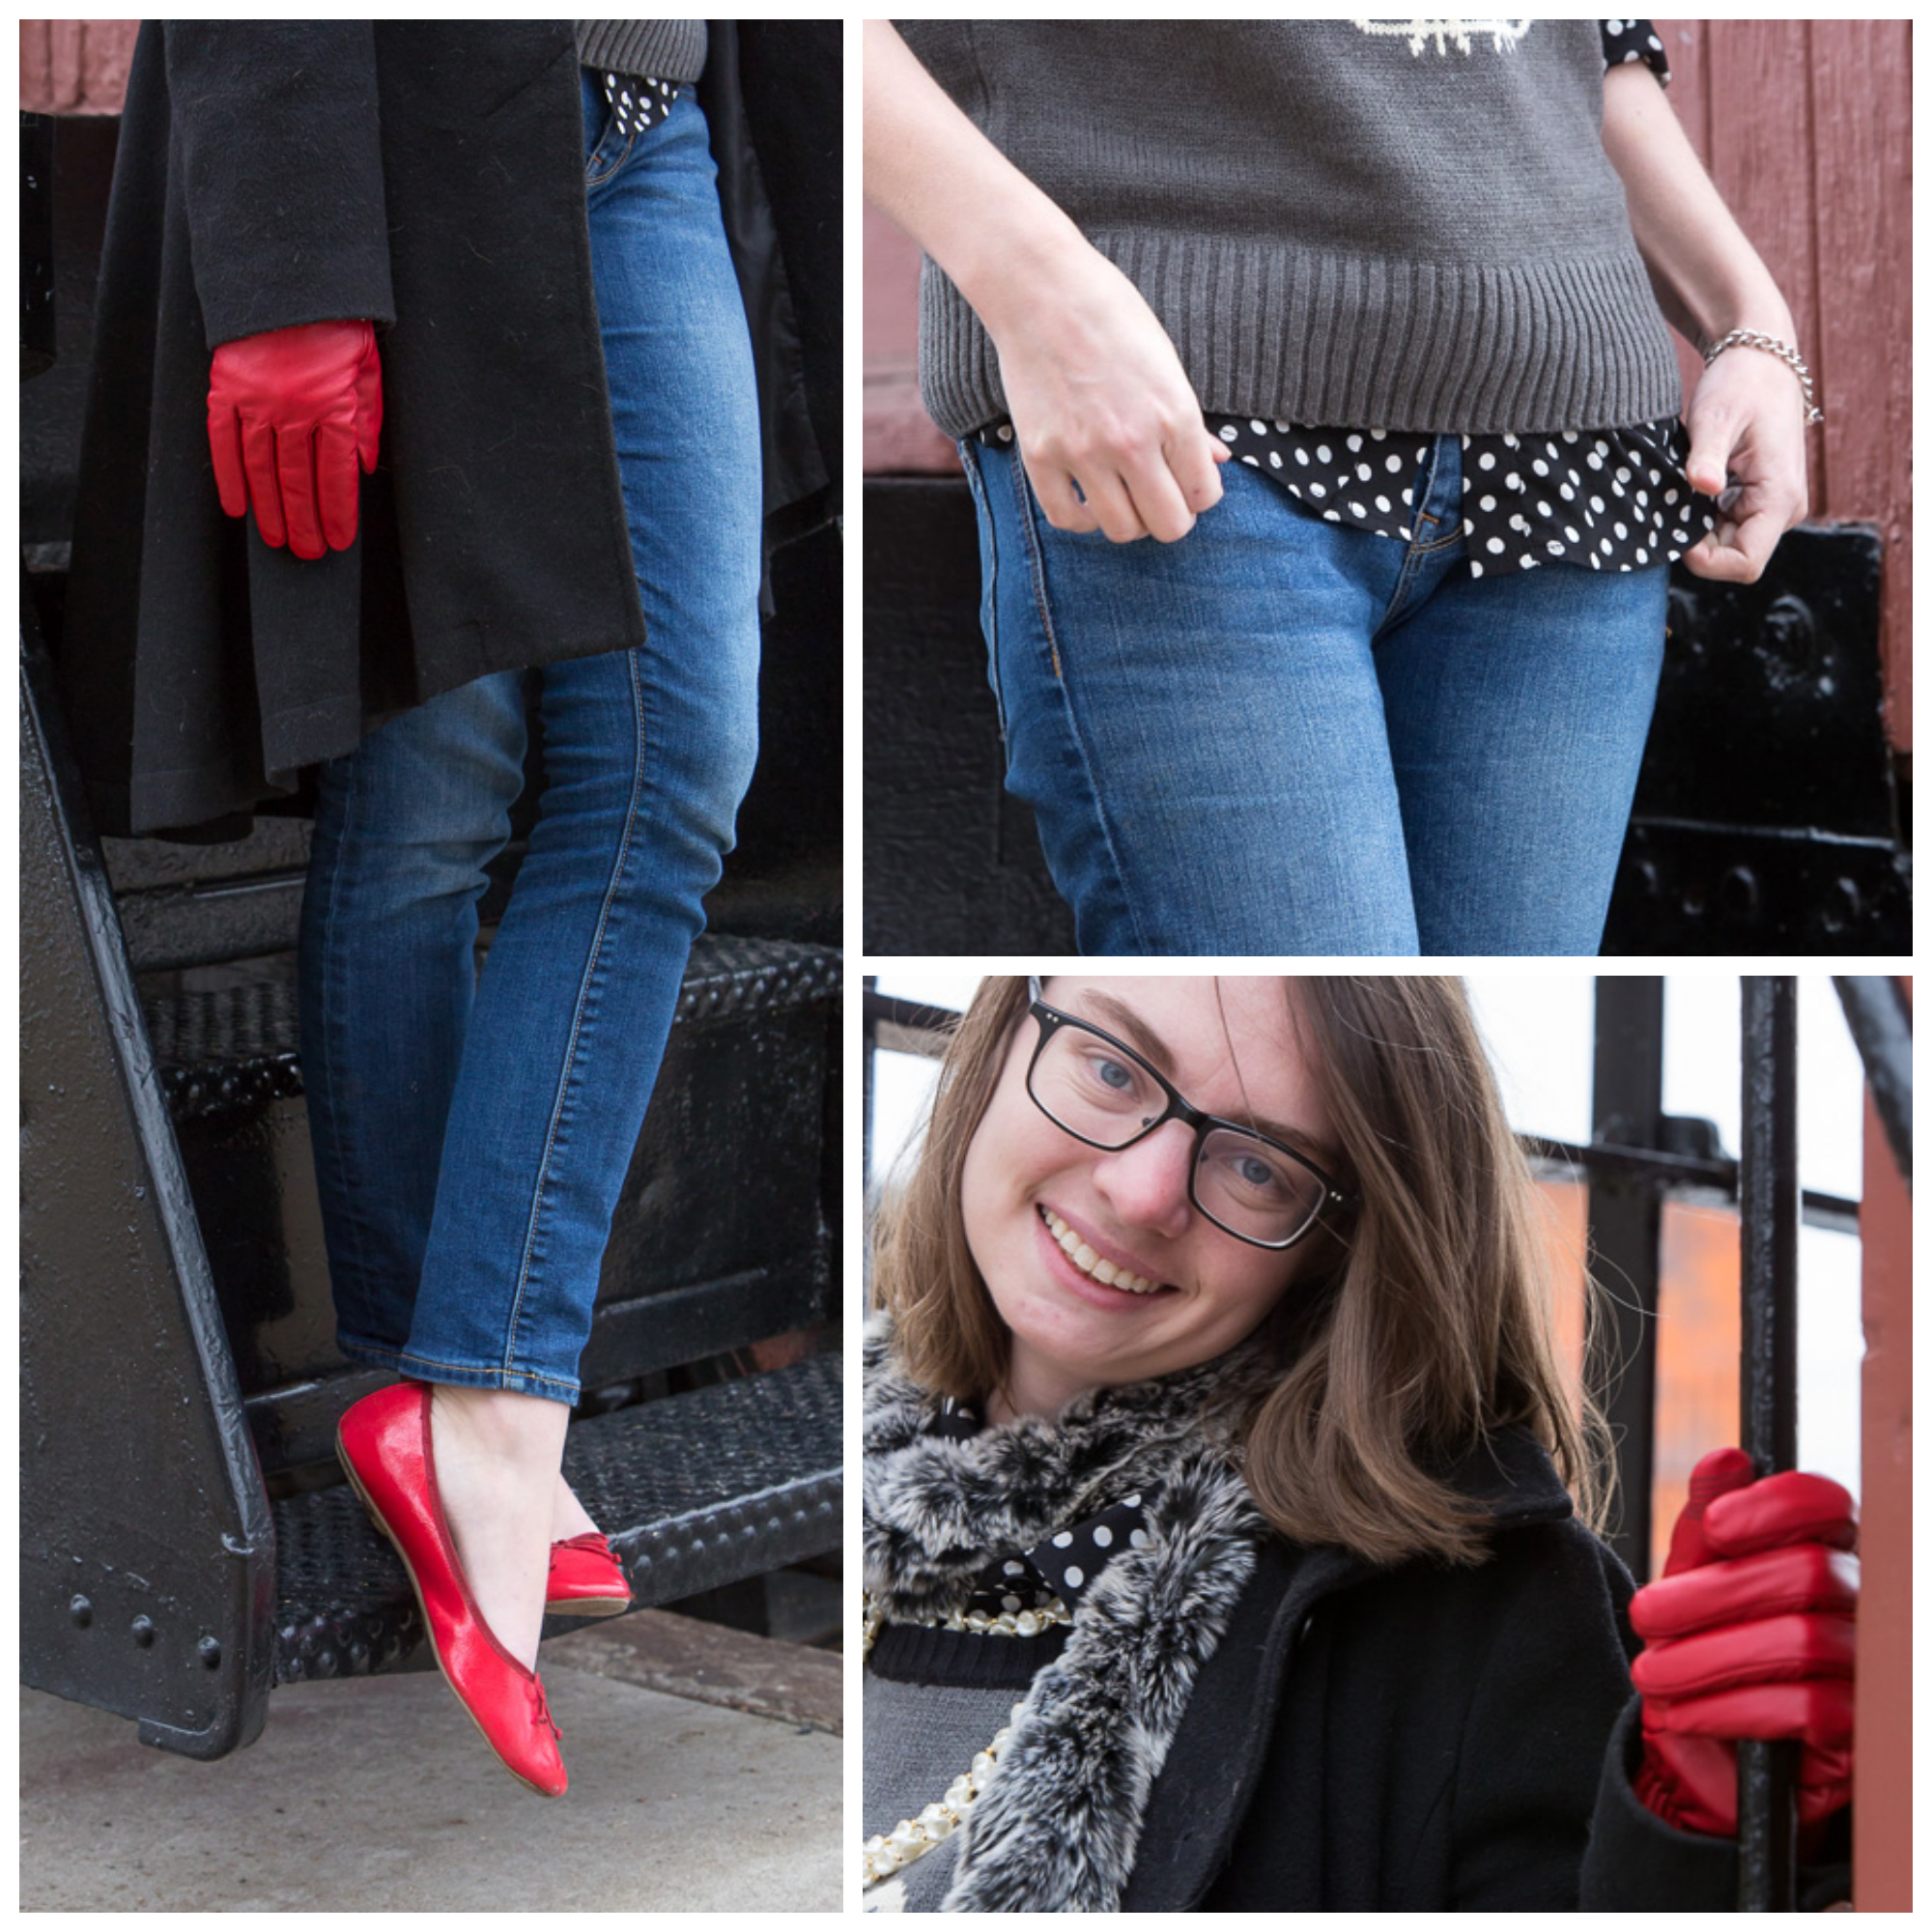 red gloves, owl sweater, polka dots, popbasic, red shoes, fur scarf, outfit, never fully dressed, withoutastyle, montana,